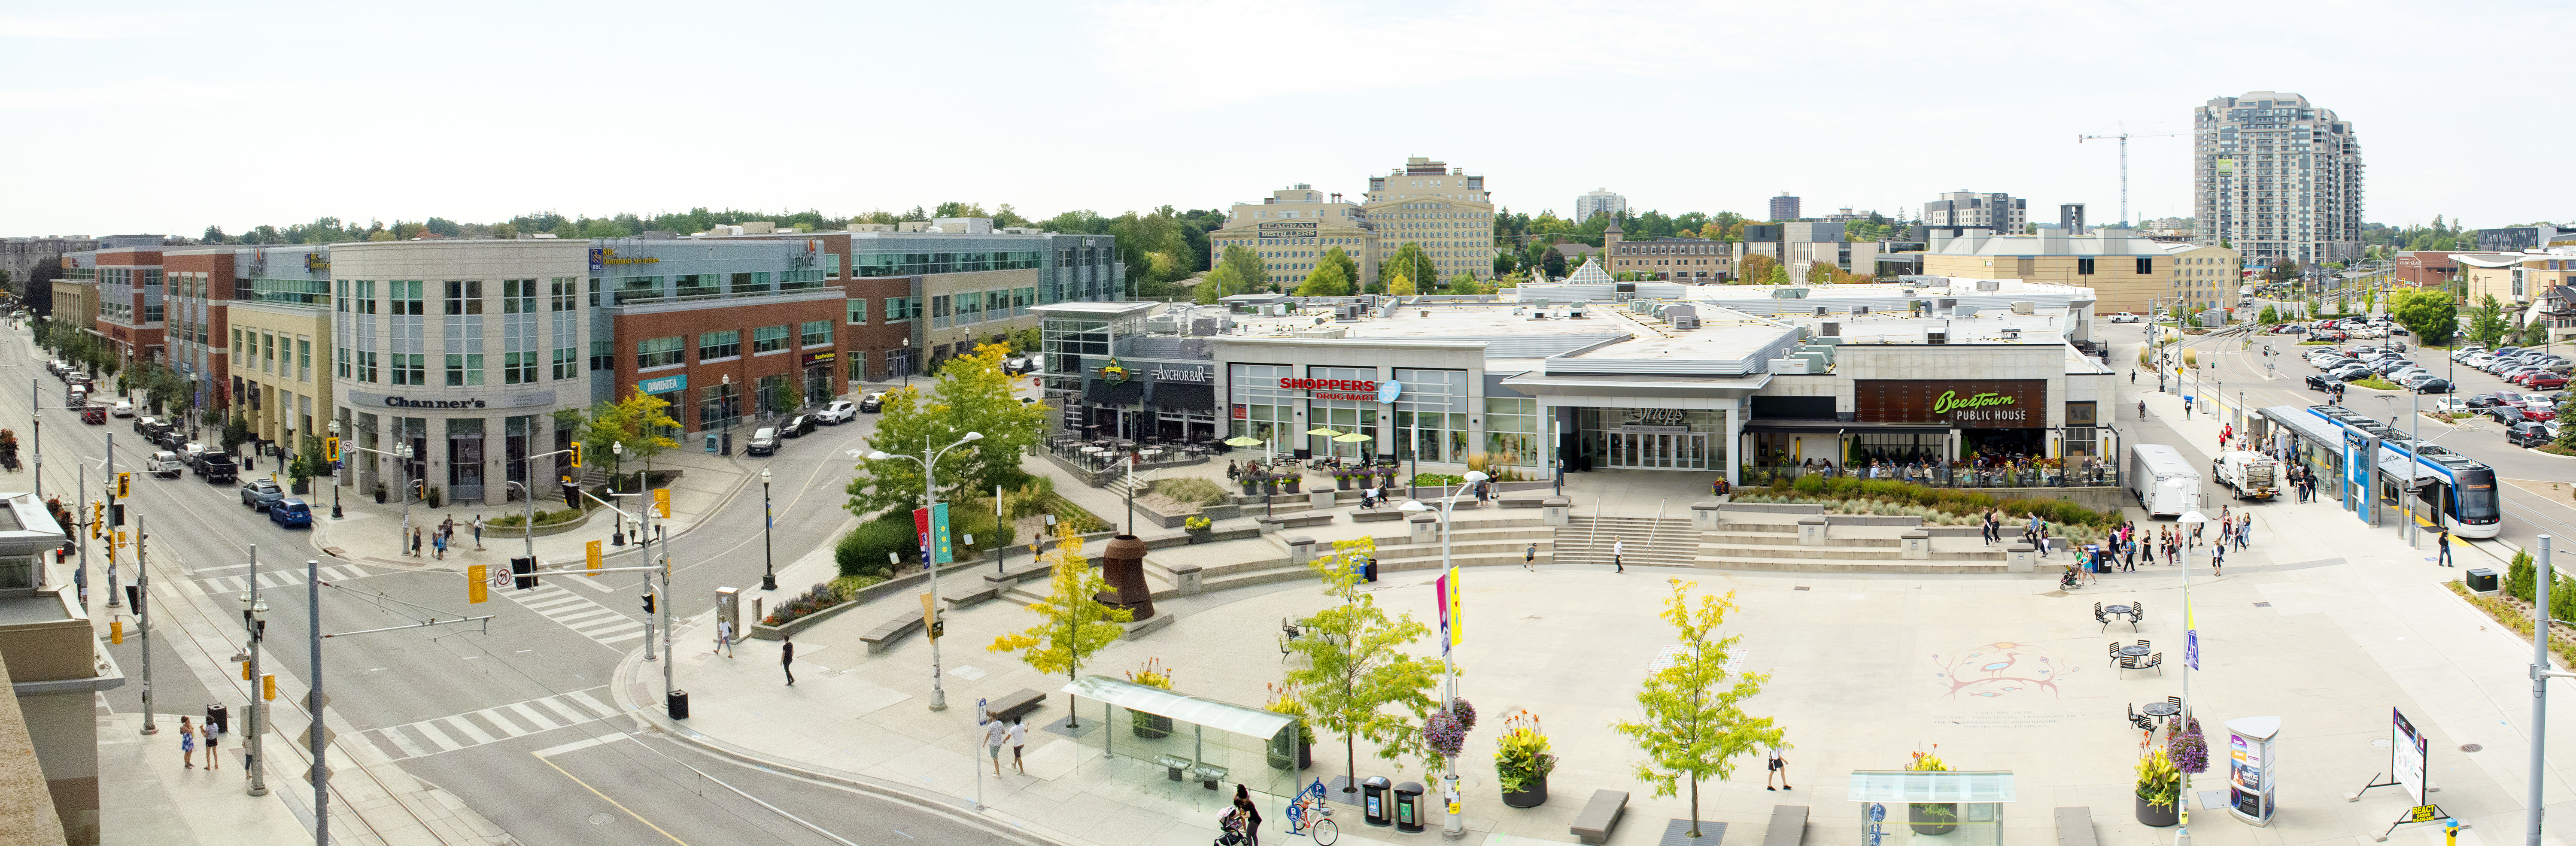 Waterloo Town Square | Retail Spaces For Lease